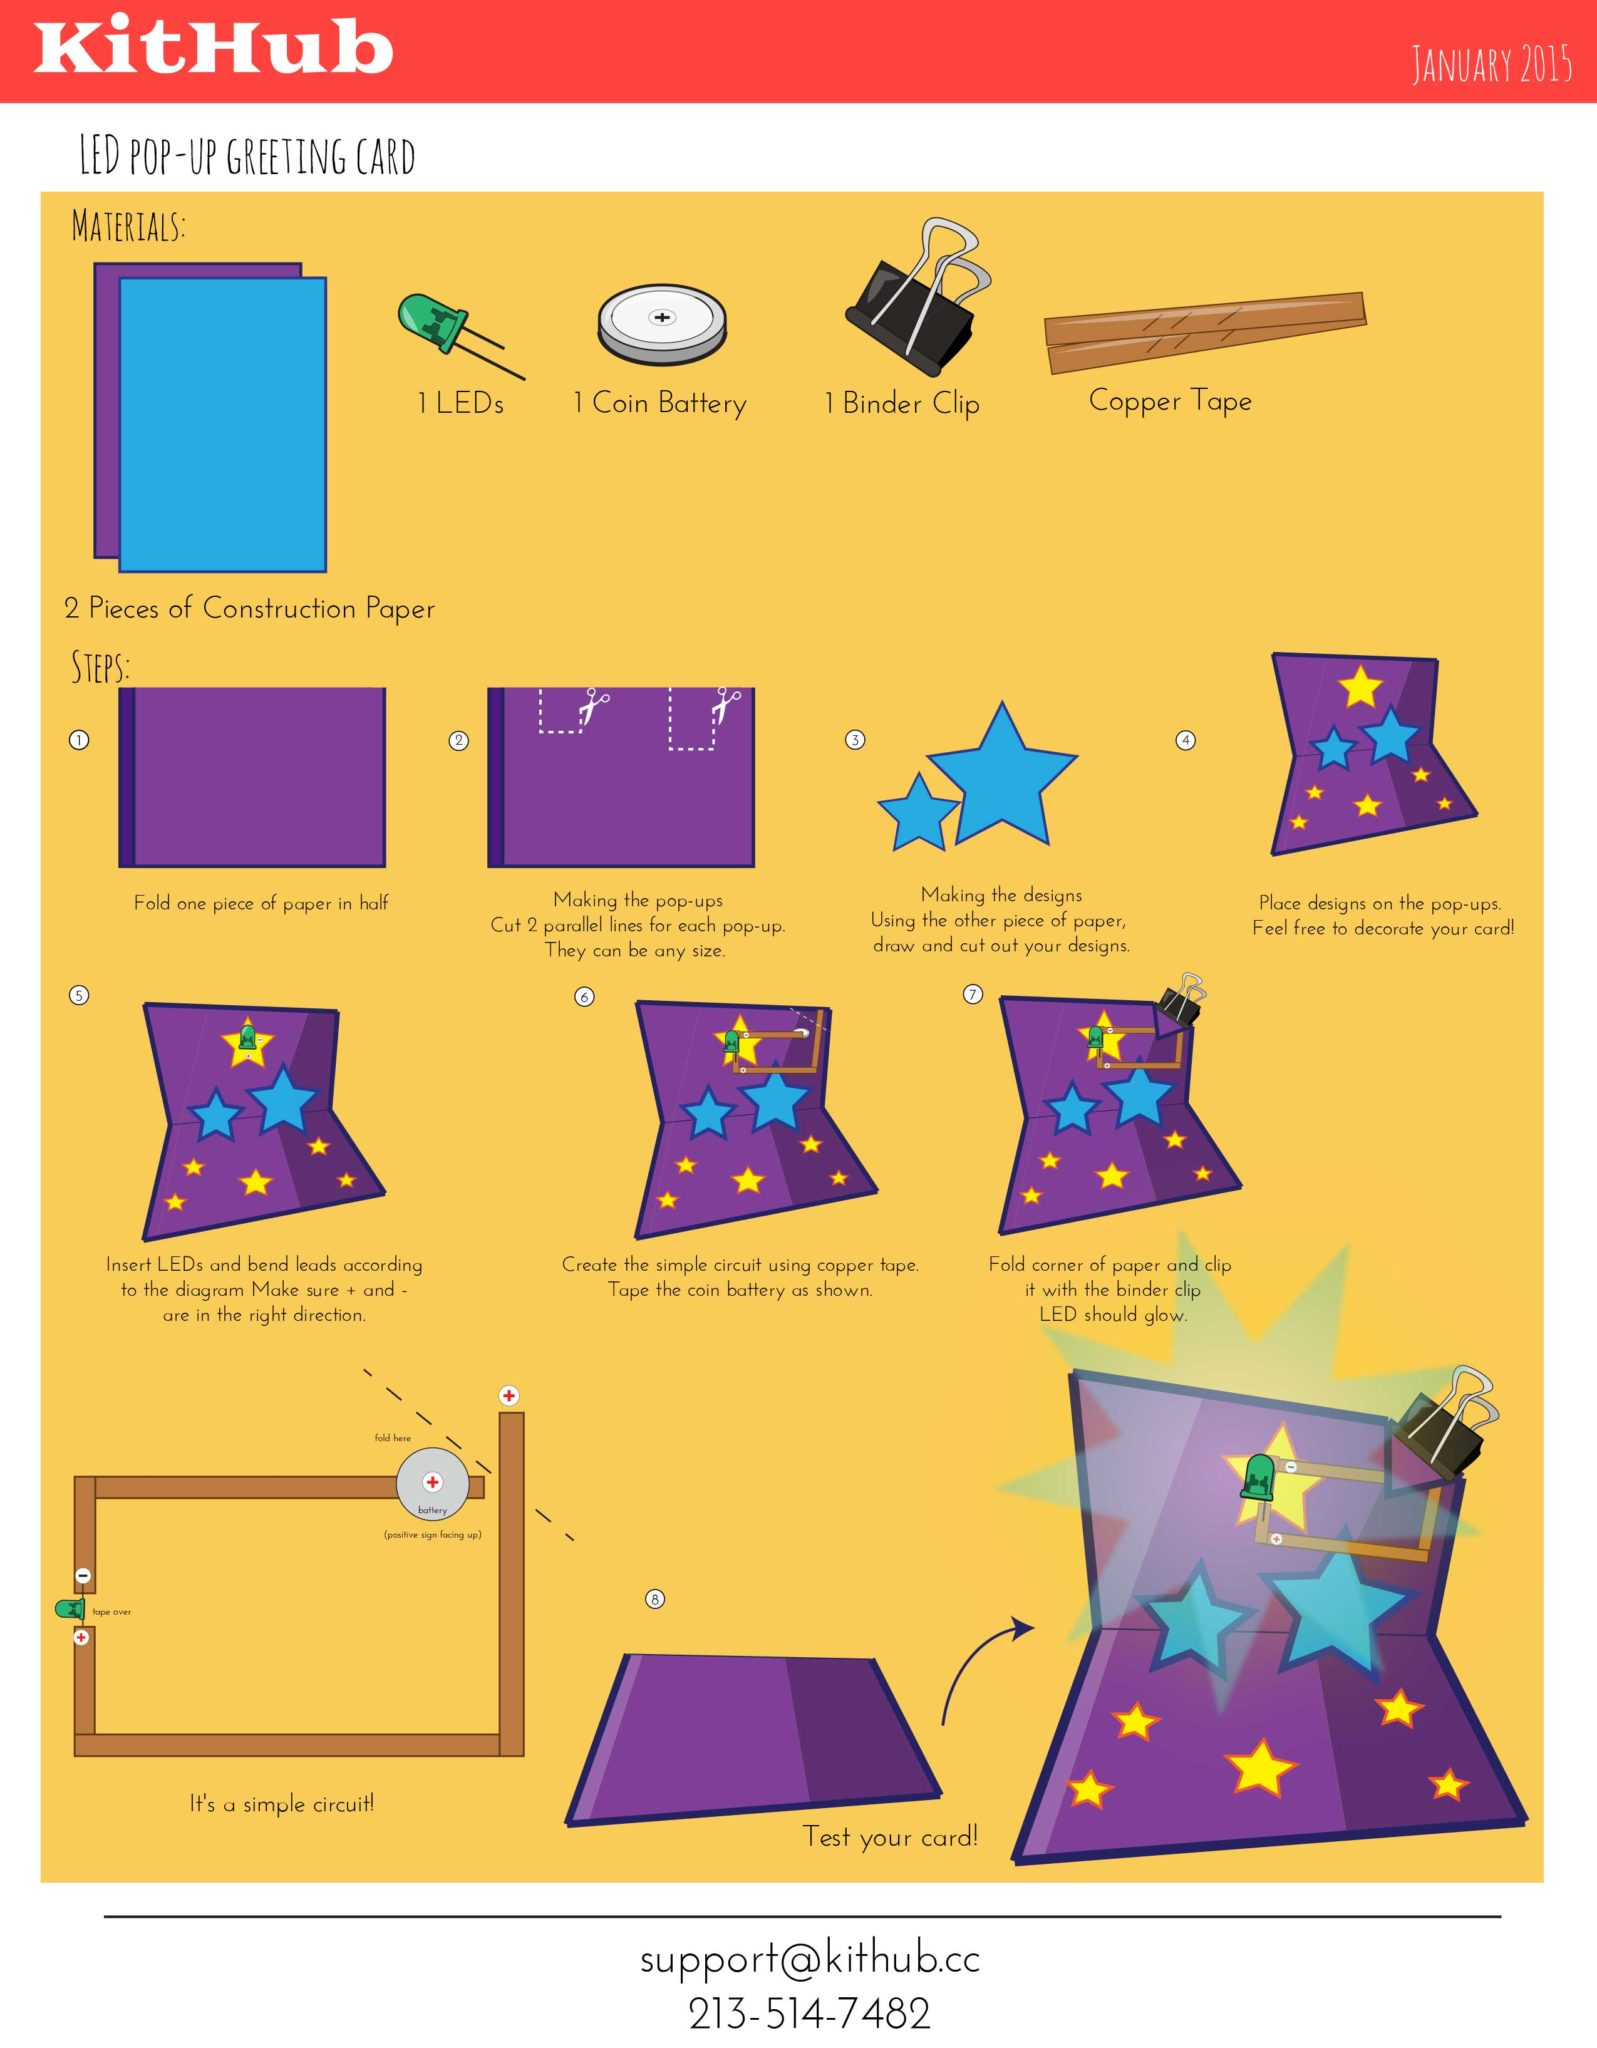 How To Make Electronic Circuits On Paper And Craft Materials Kithub Simple Circuit For Students Instructions Led Pop Up Greeting Card